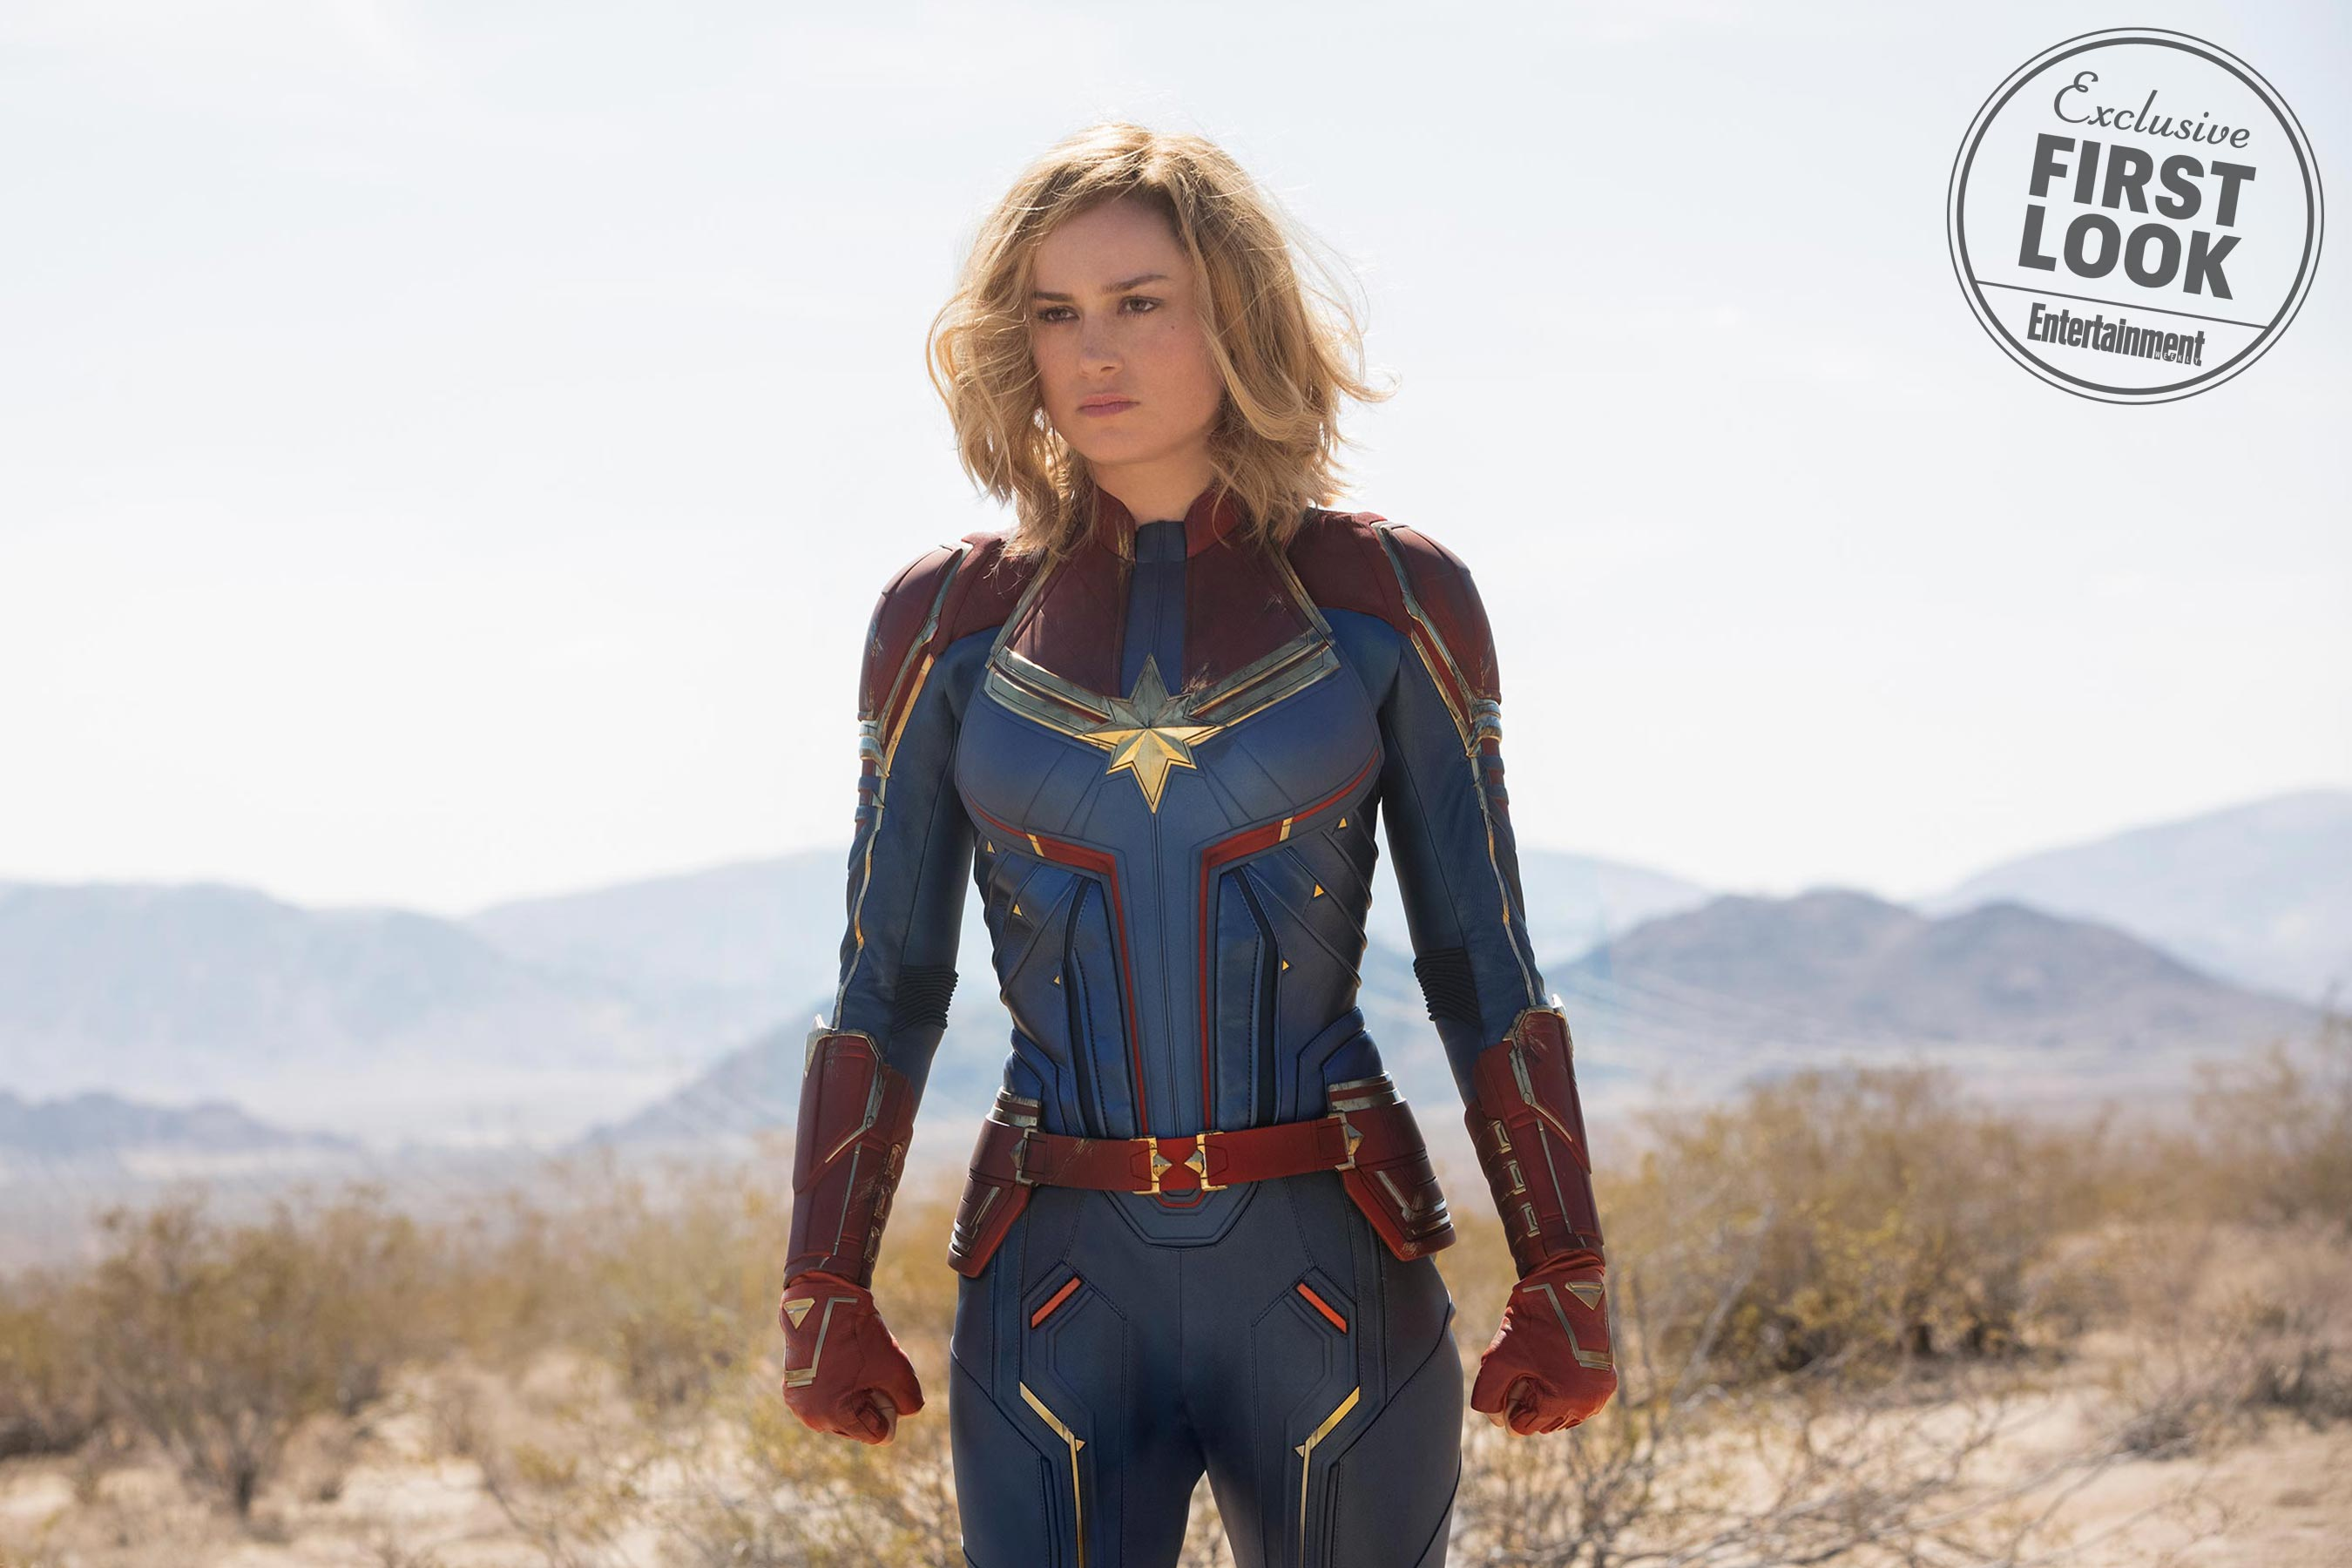 Captain Marvel - First Look foto's